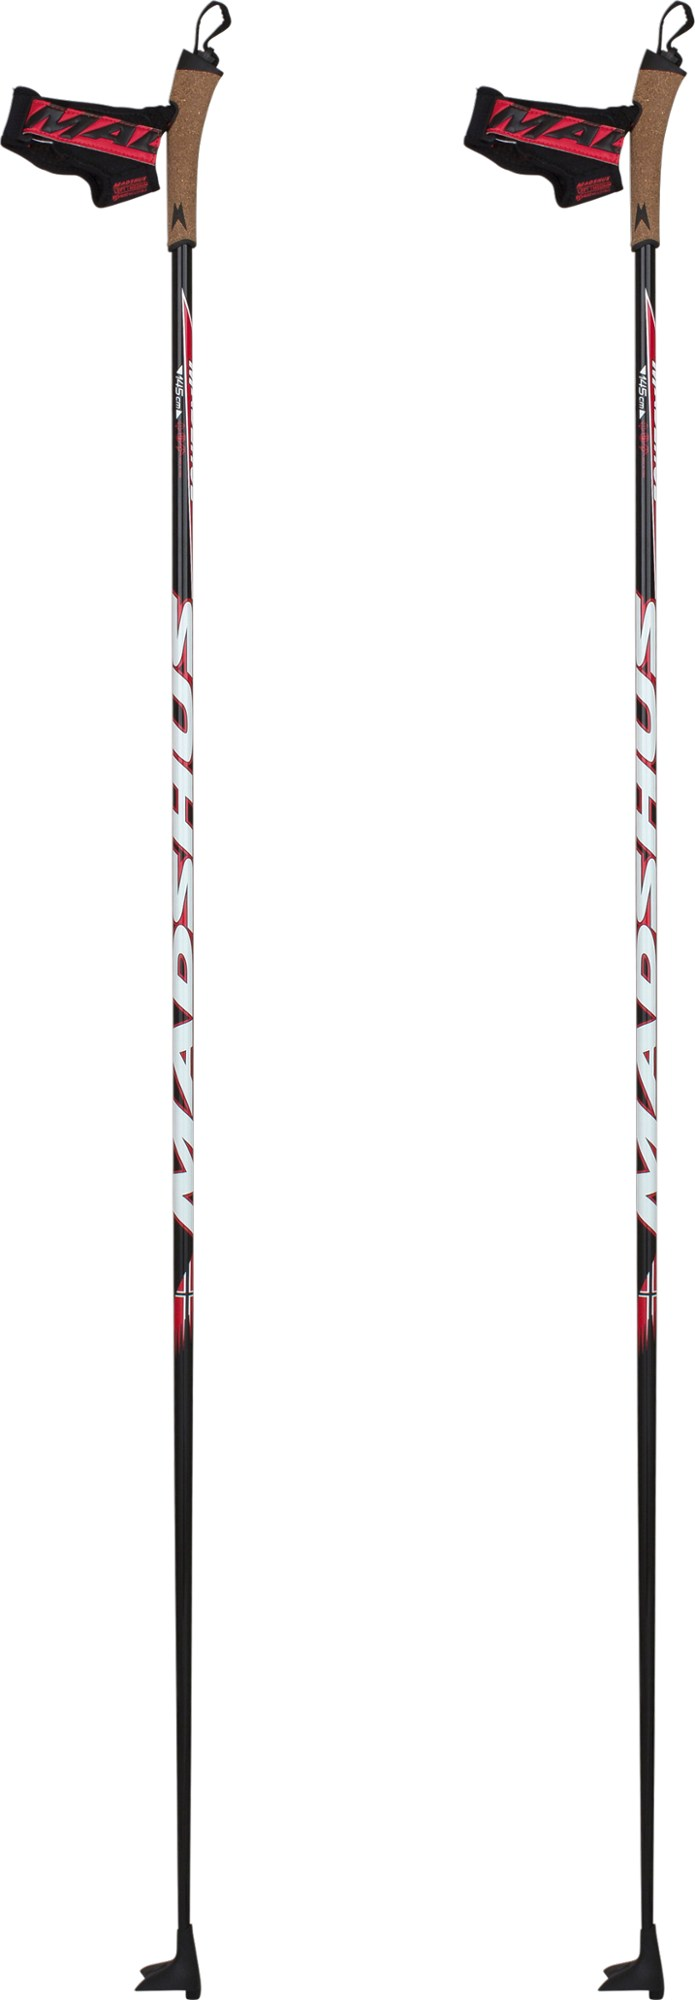 Madshus Carbon Race 70 Cross-Country Ski Poles